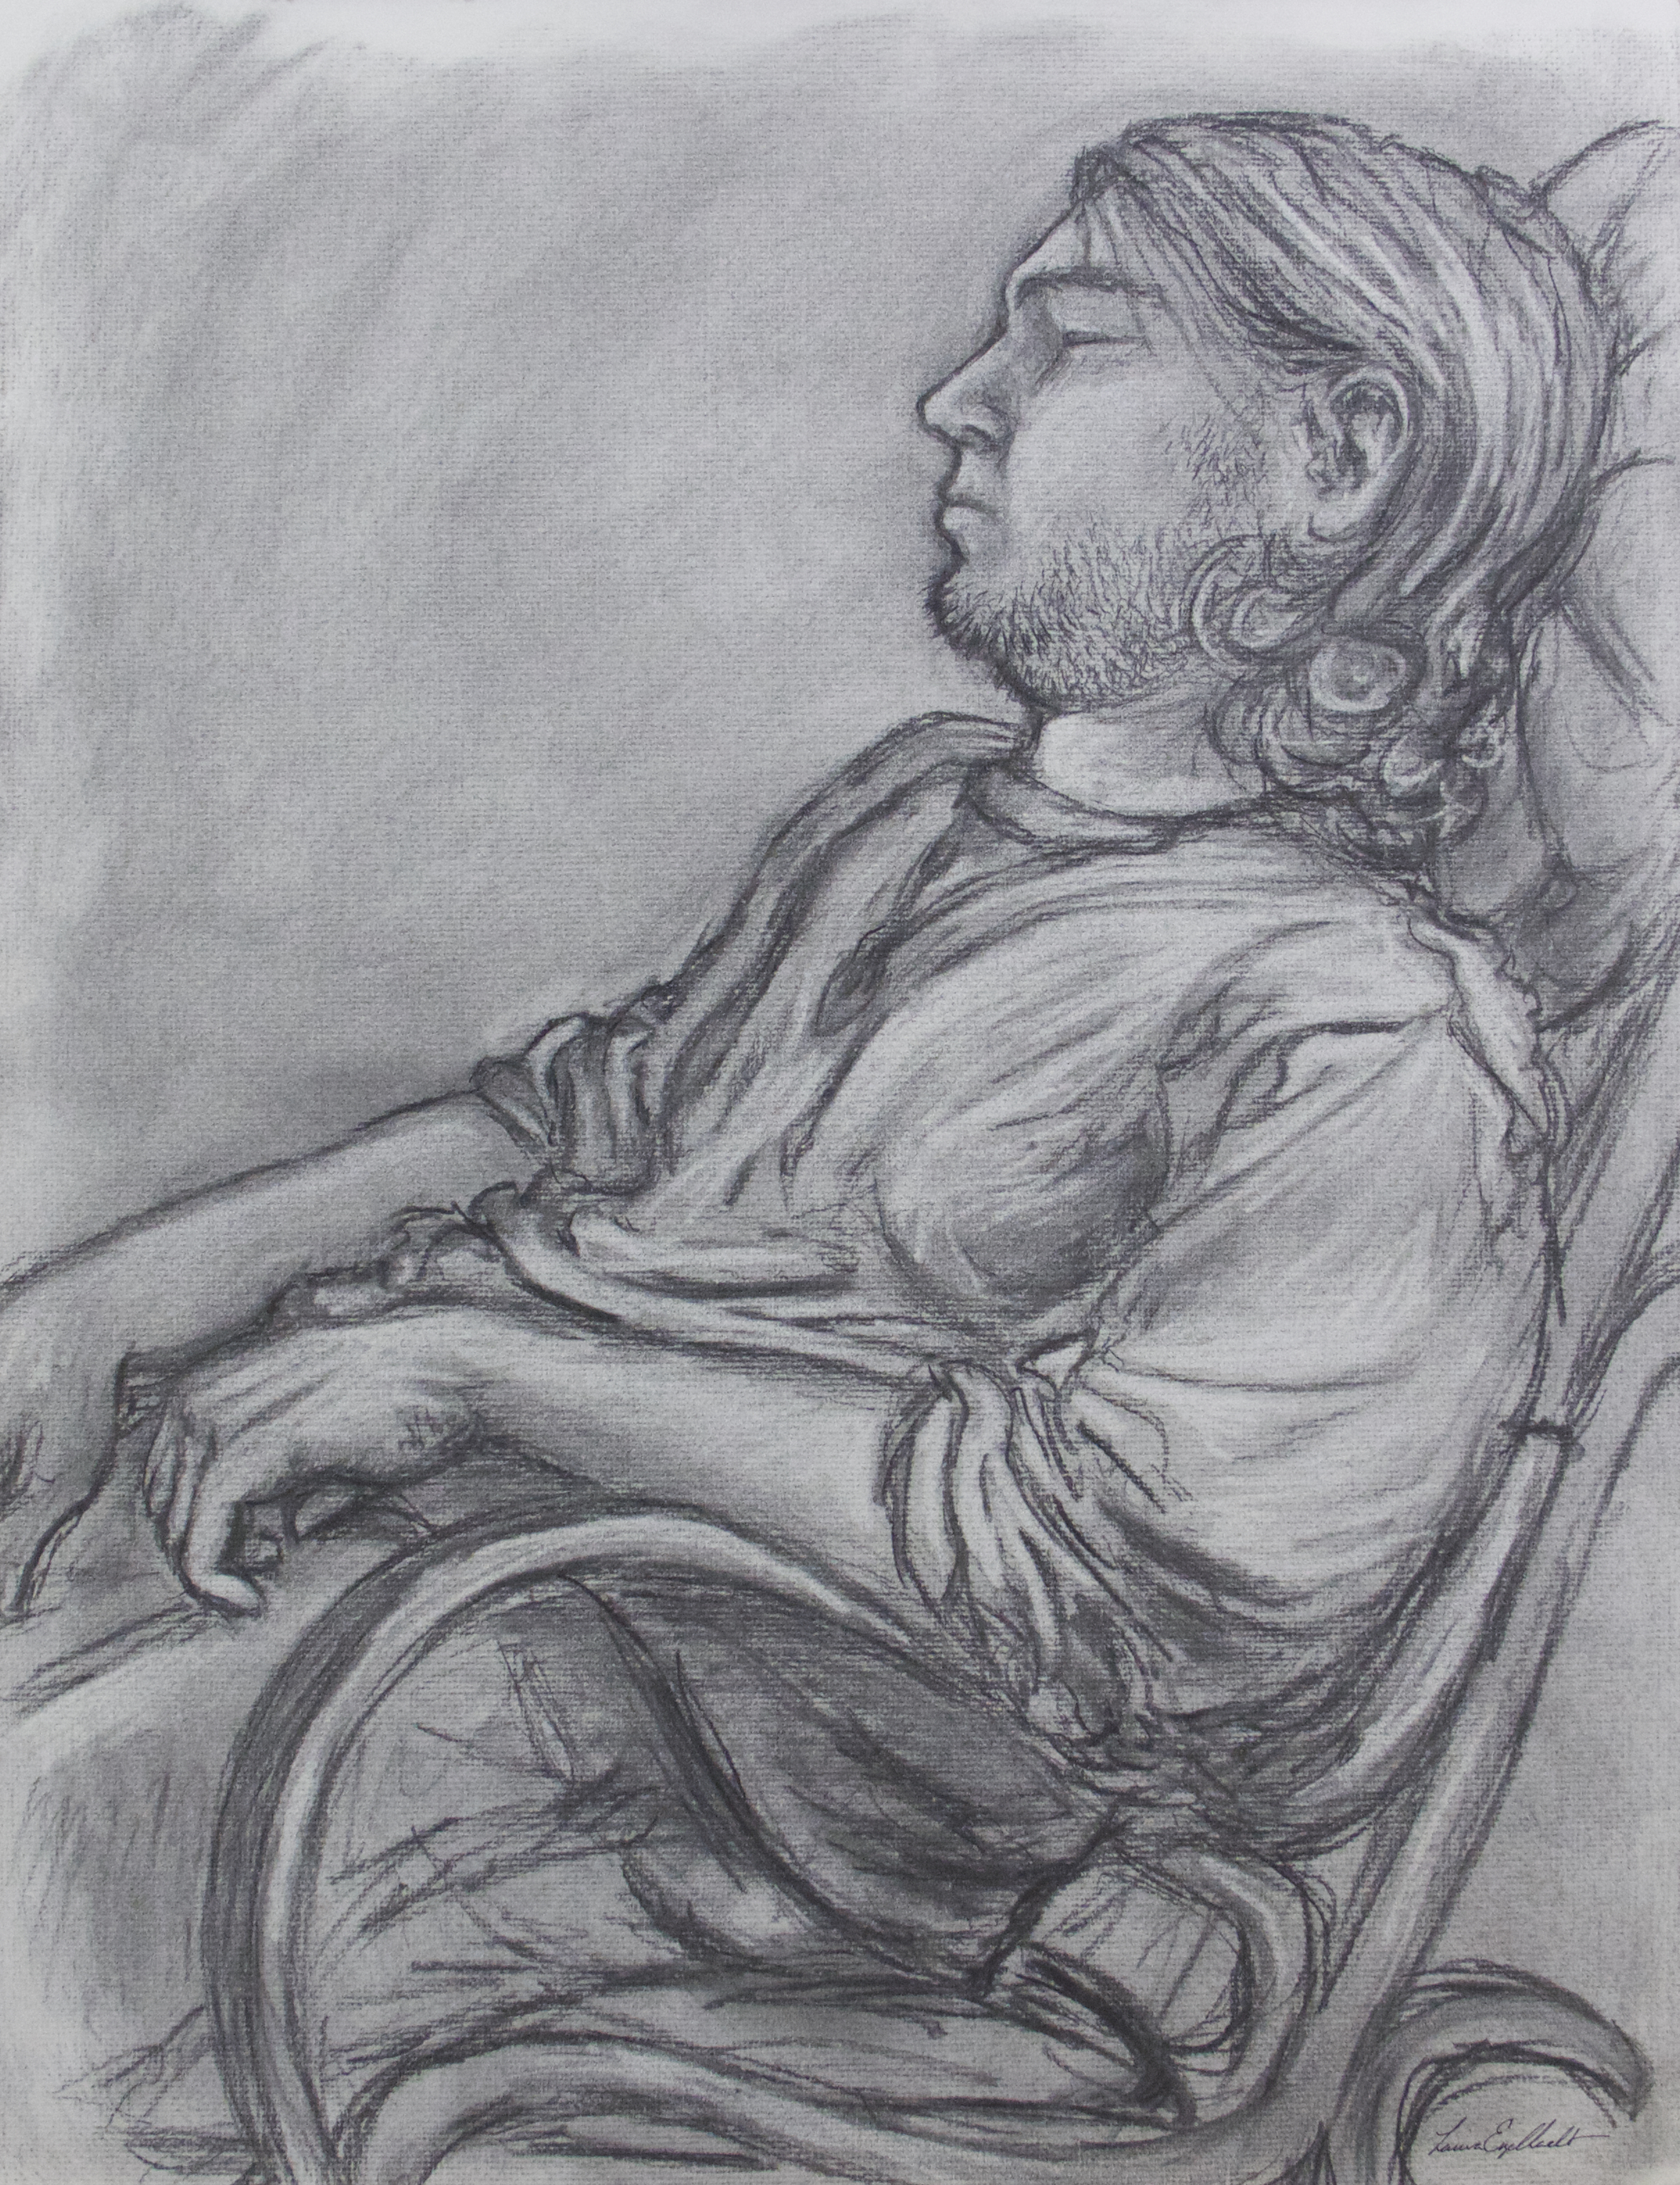 Sleeping Figure_18x24_Charcoal.jpeg